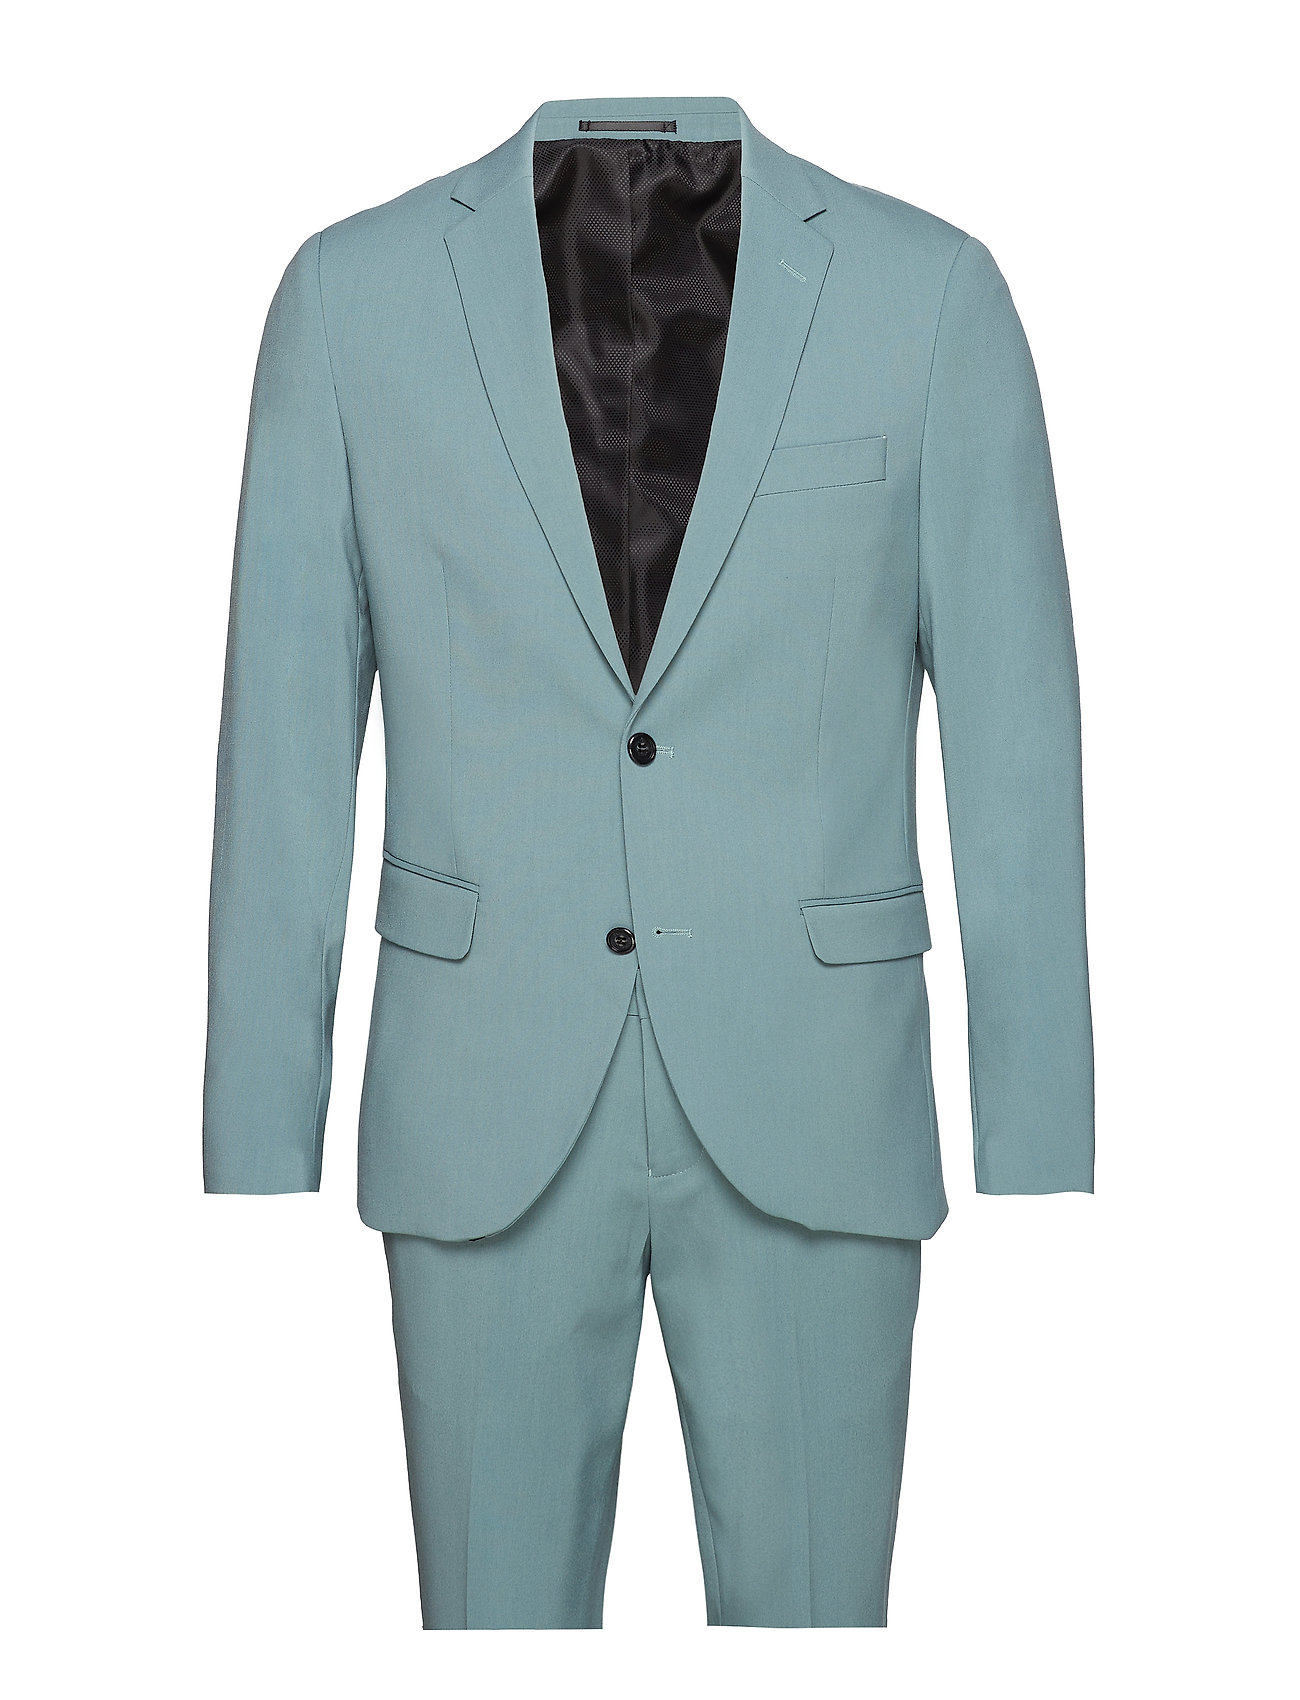 Lindbergh Plain mens suit - MINT